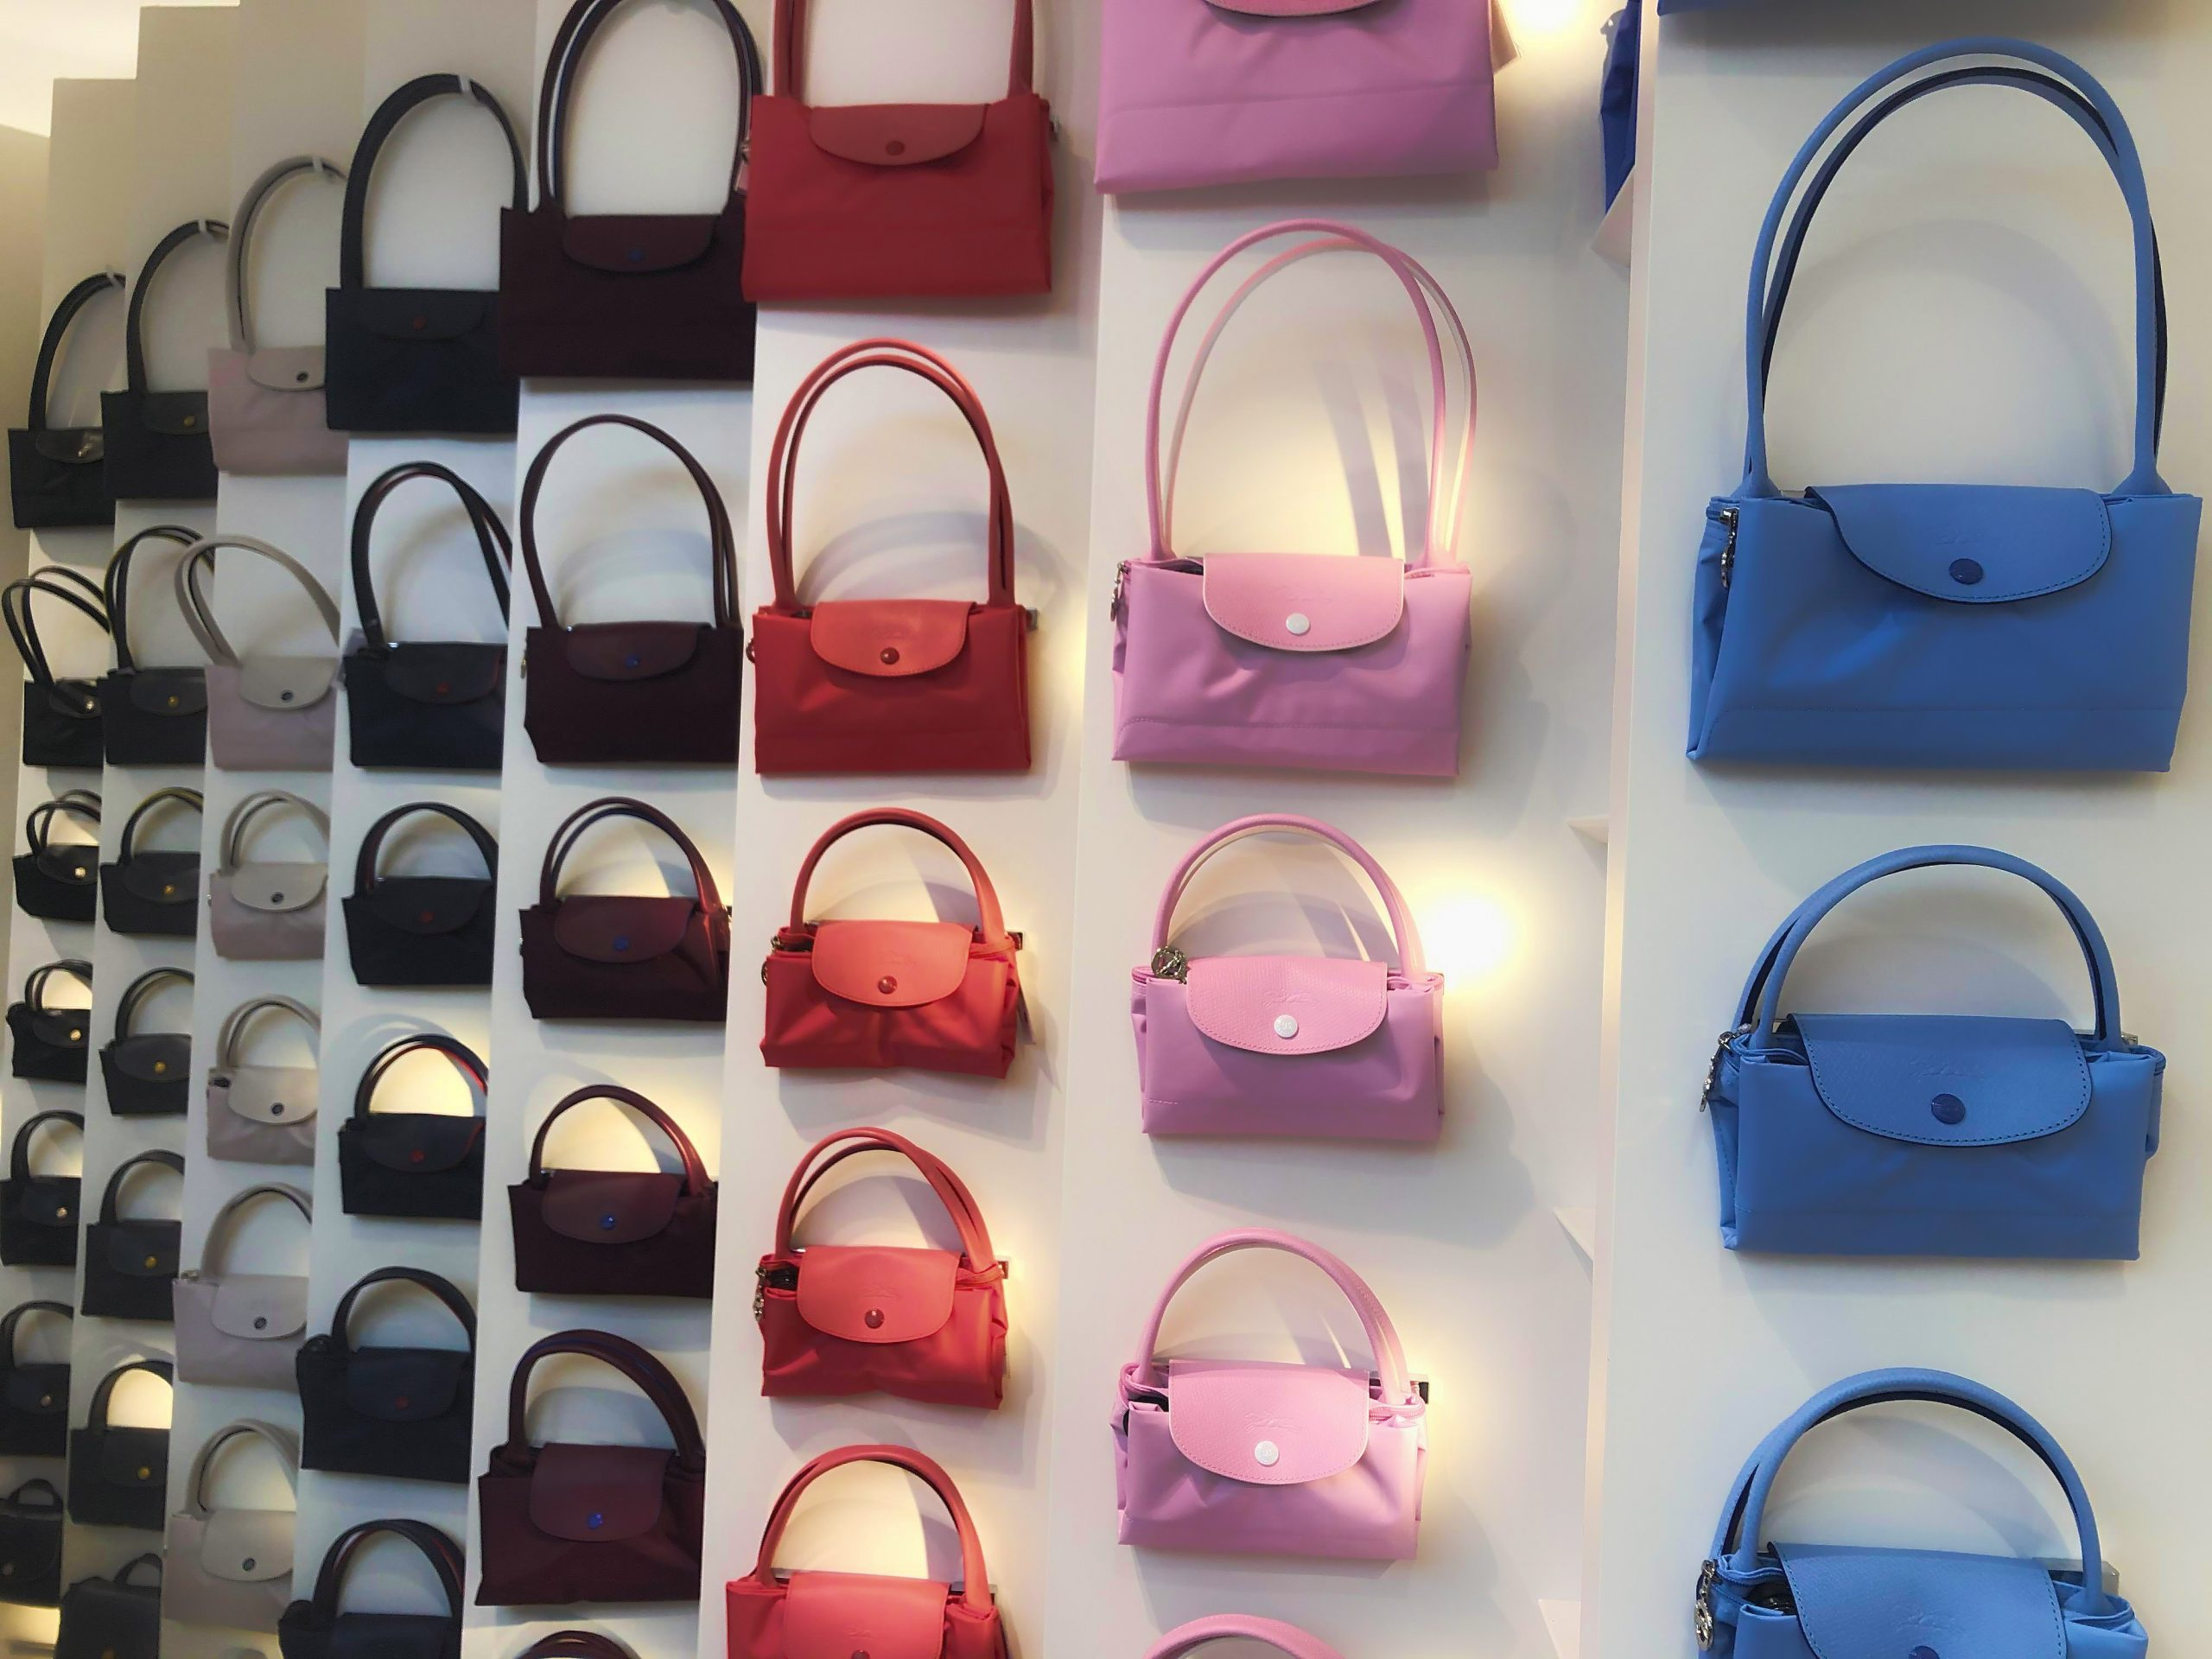 The French style: Longchamp bags